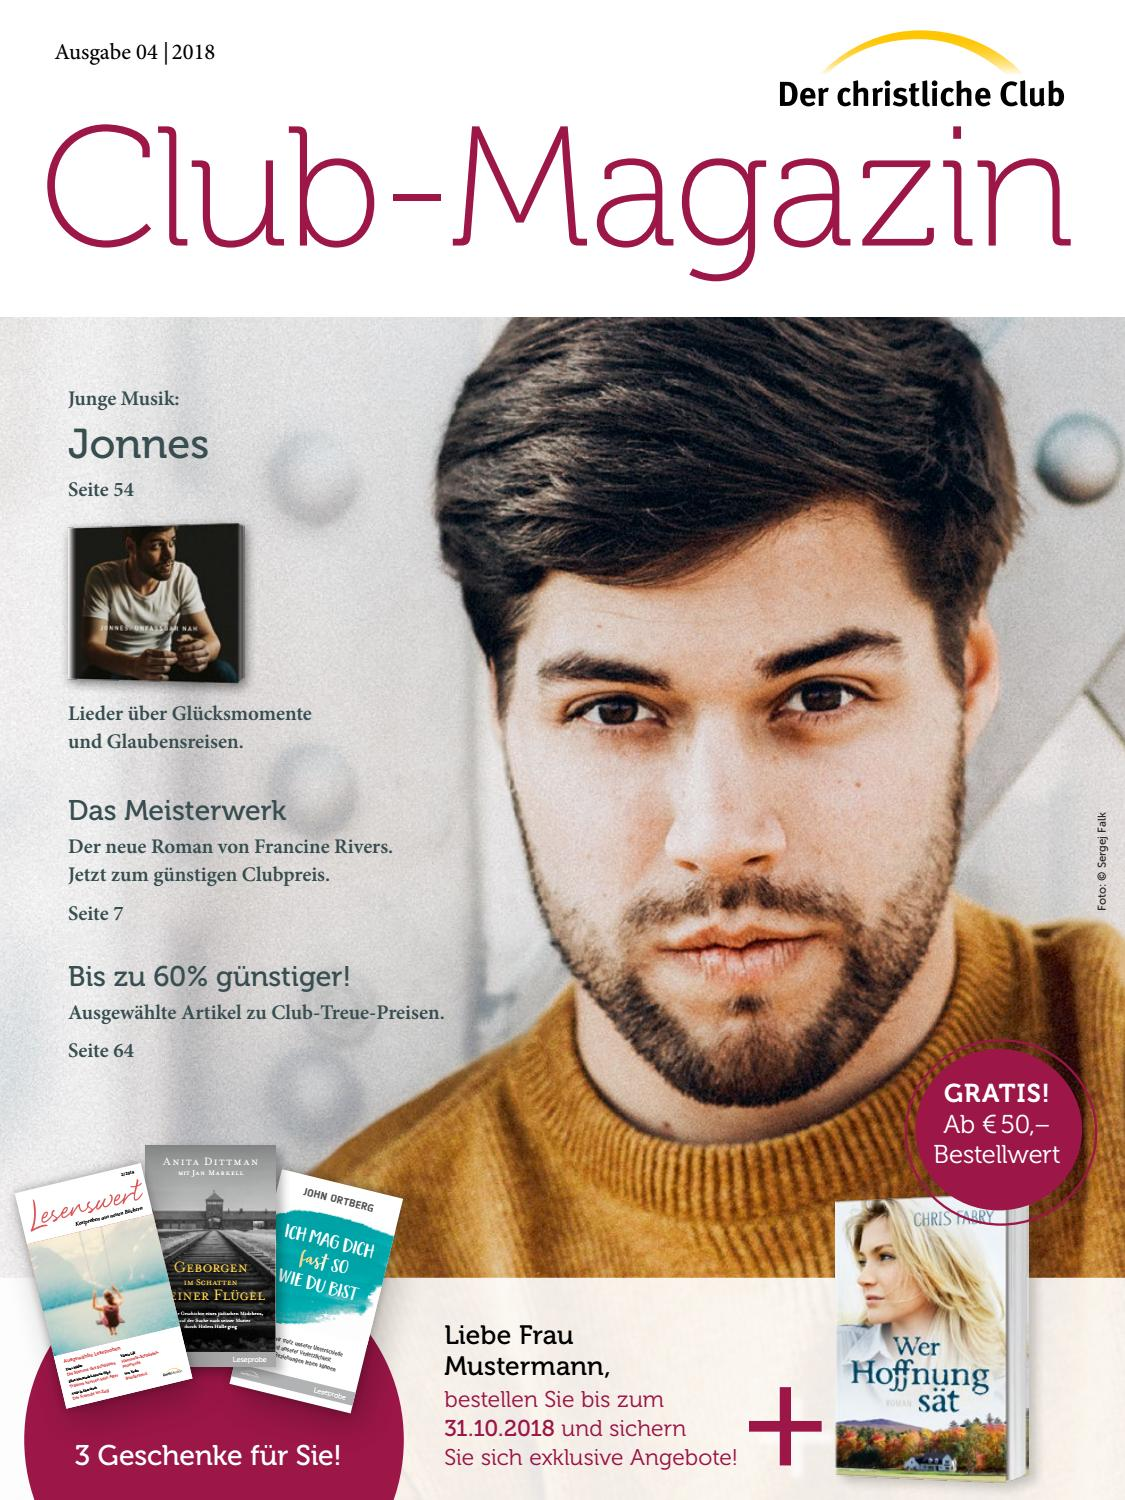 Club-Magazin 04/2018 by Gerth Medien - issuu